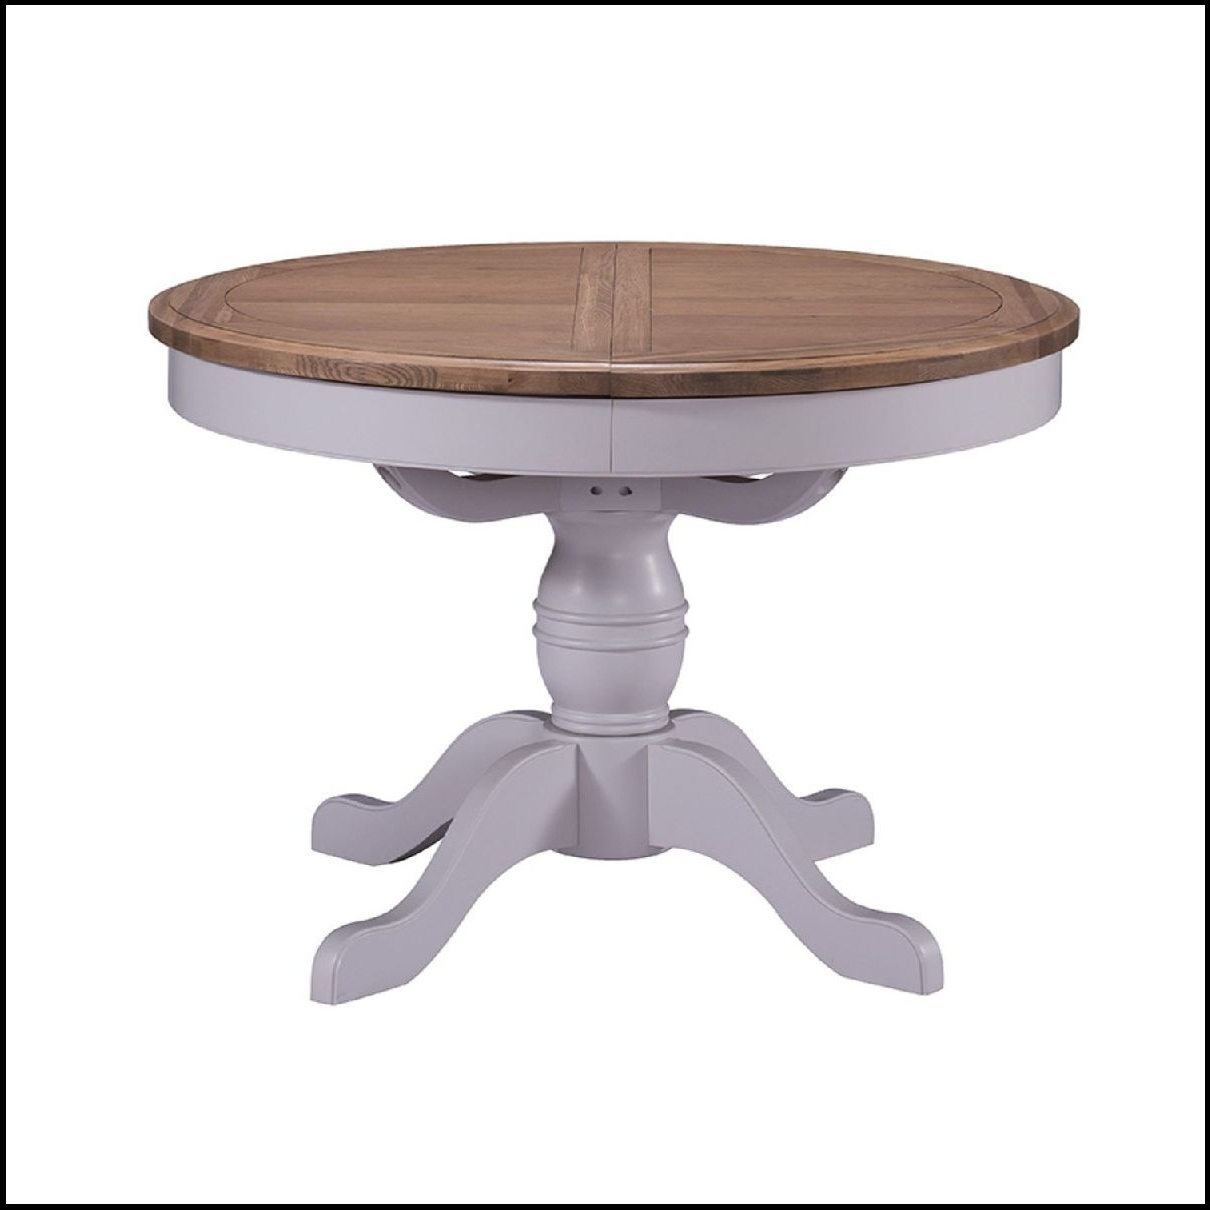 Glass Round Extending Dining Tables intended for Preferred Beautifull Royal Oak Round Glass Dining Table With Round Extendable